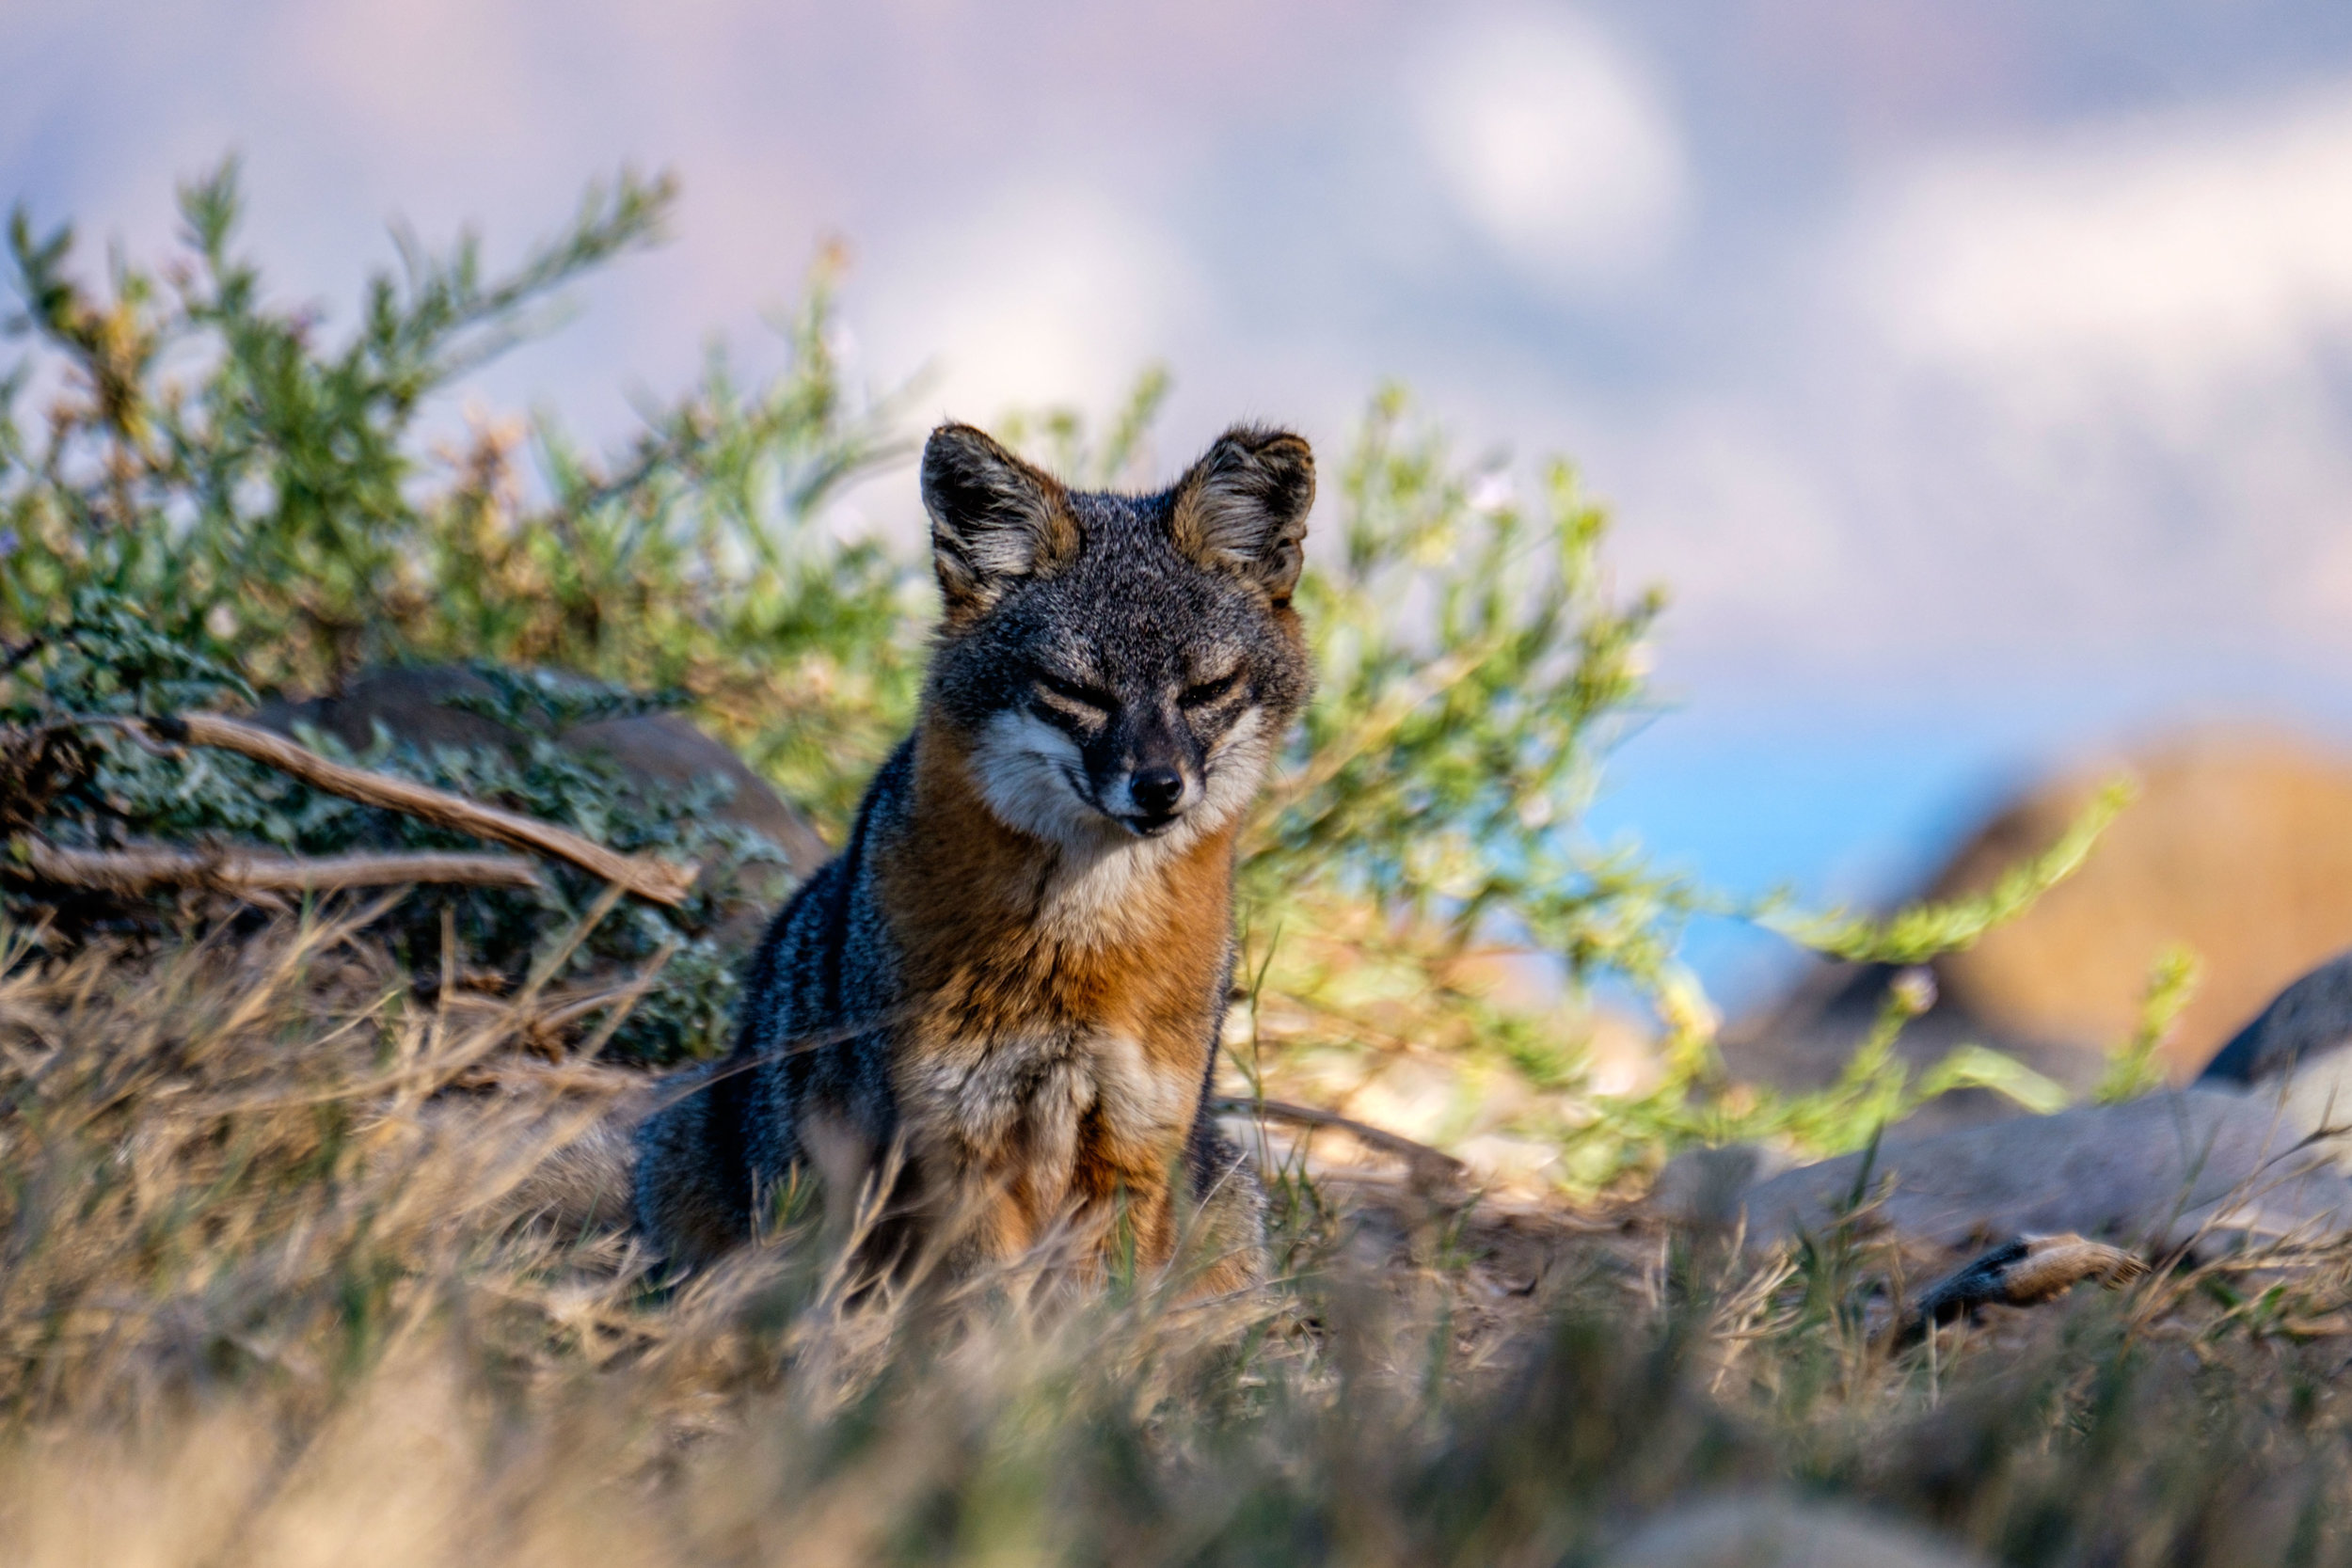 The Santa Cruz Island Fox lives on this island in this national park. They are tiny, precocious, and habituated to humans (but please never feed them!!)